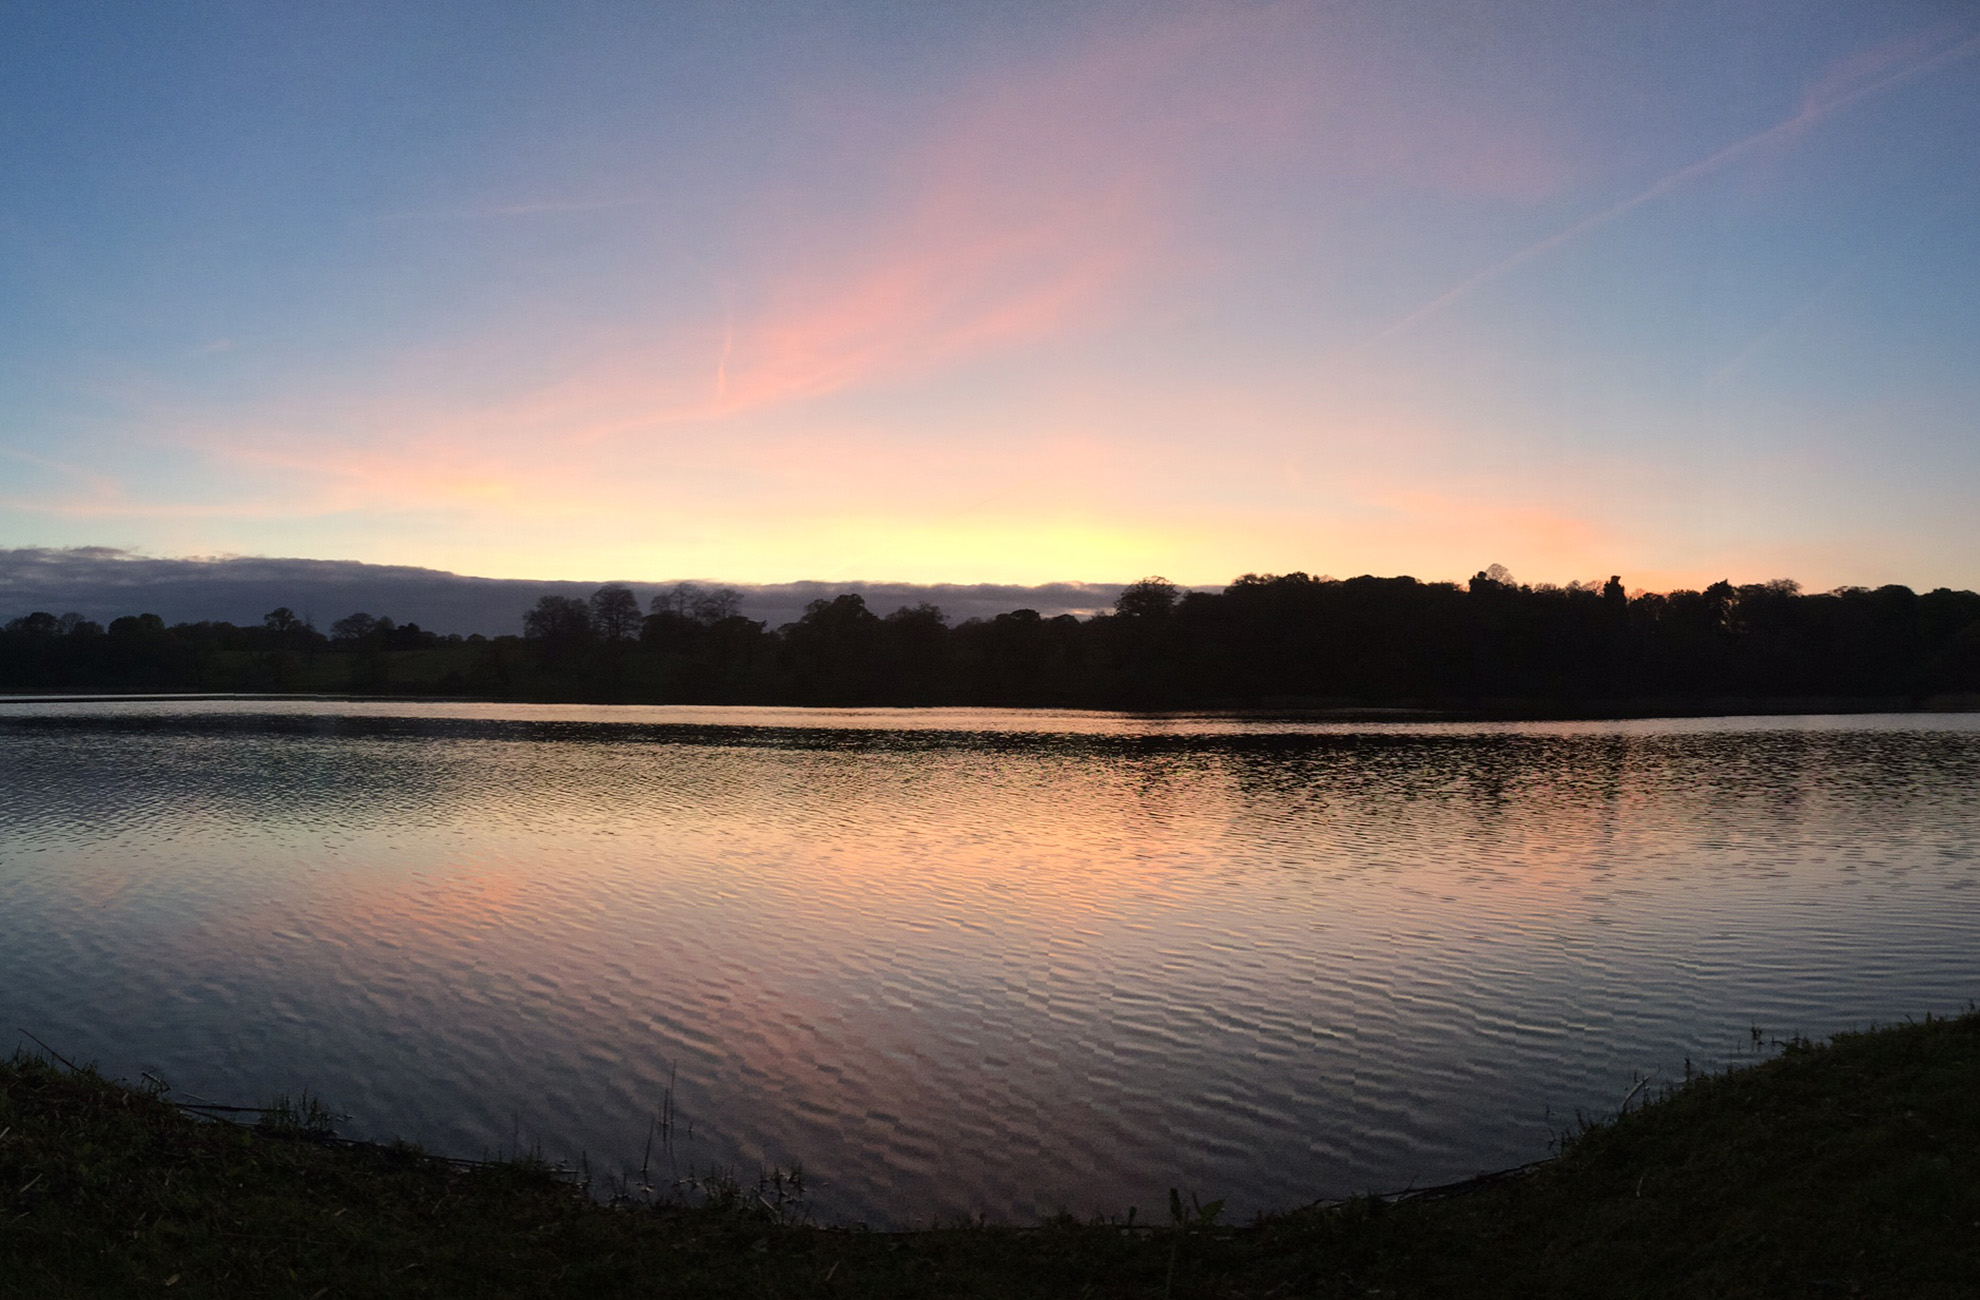 The lake at Combermere Abbey looks beautiful In the evening sun